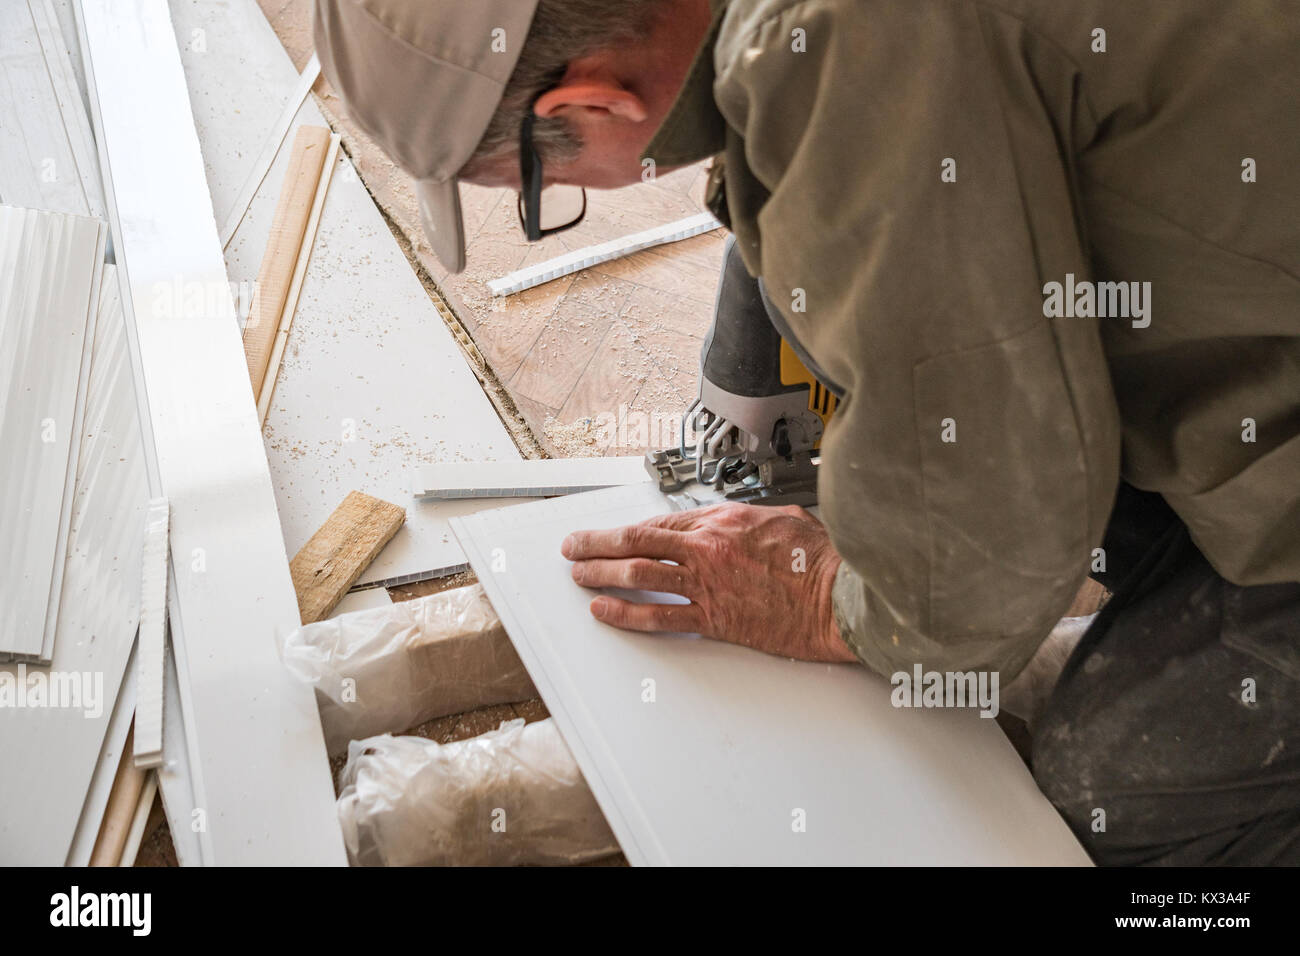 Builder works with white plastic parts - Stock Image